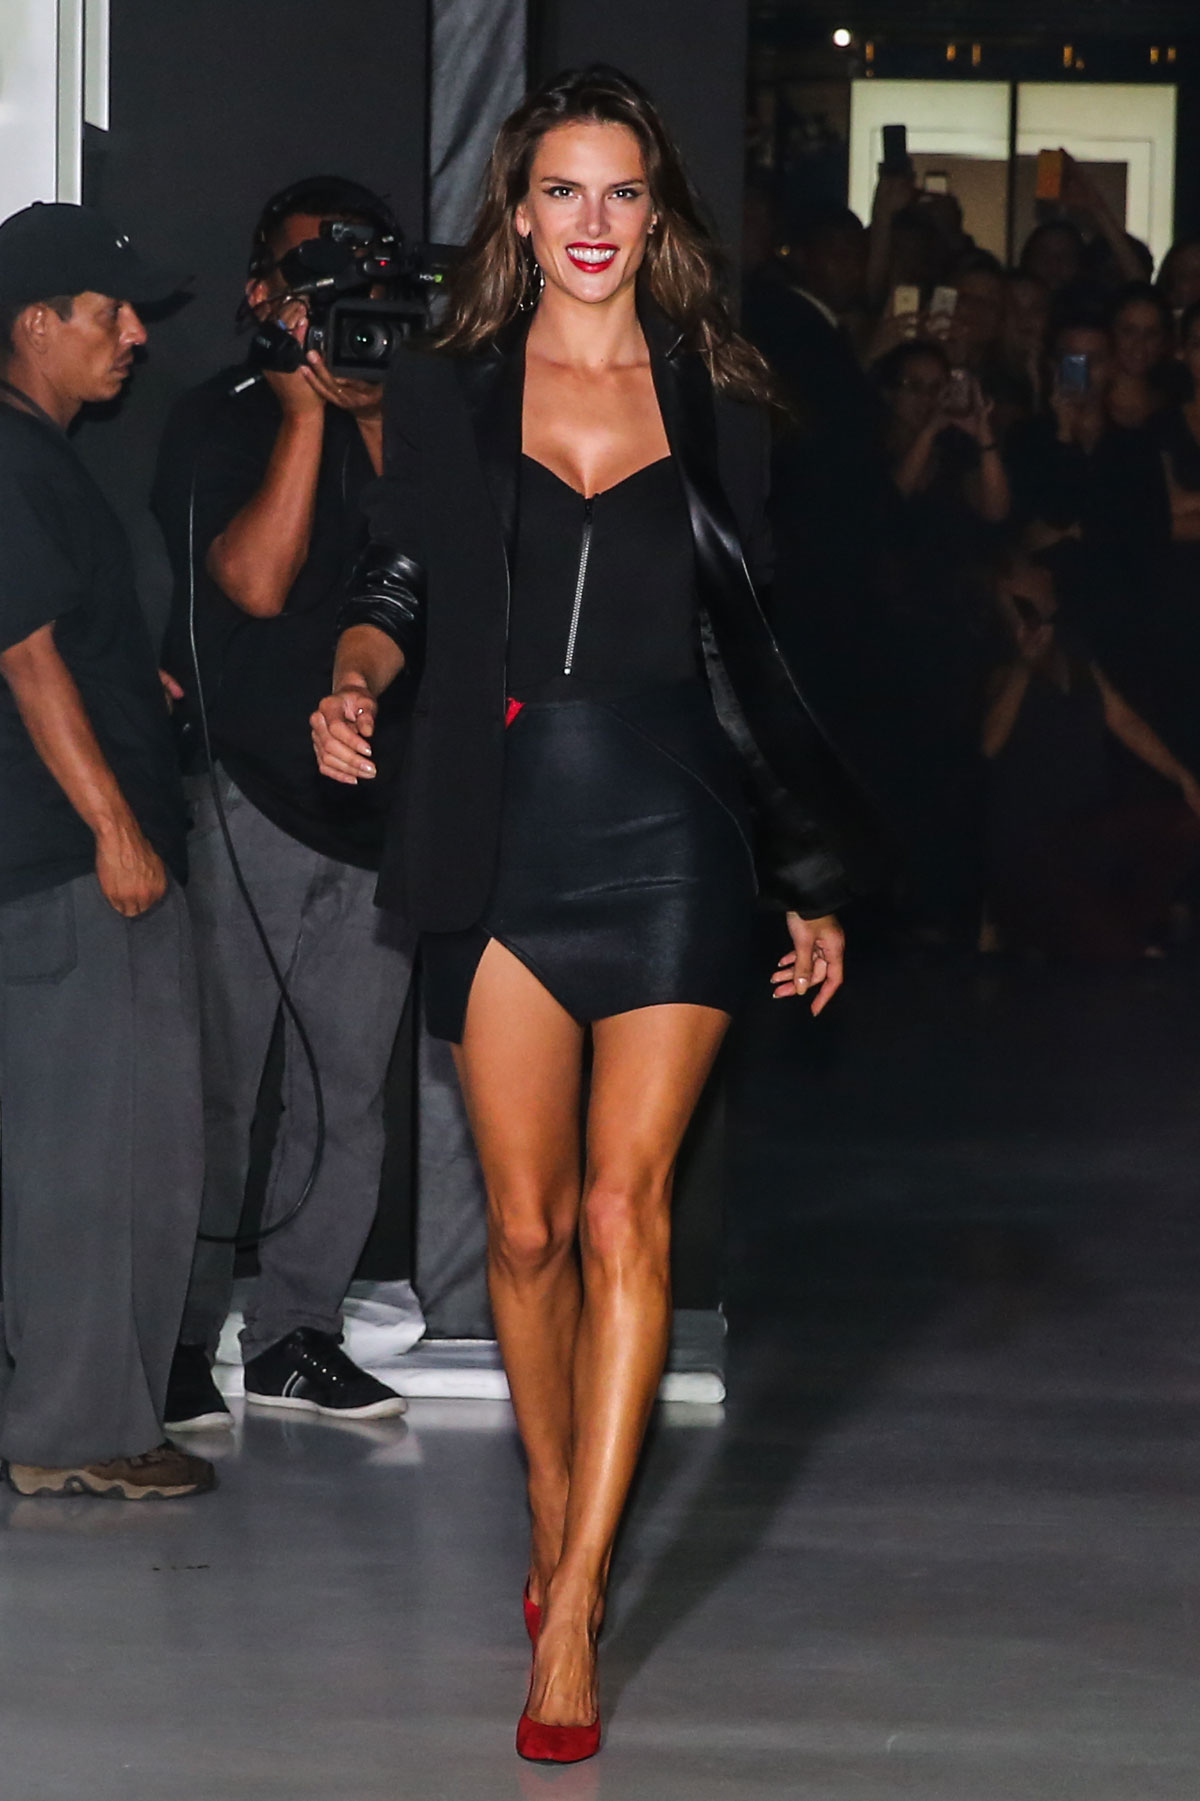 Alessandra Ambrosio attends the 2014 Schutz Fall Collection Fashion Show